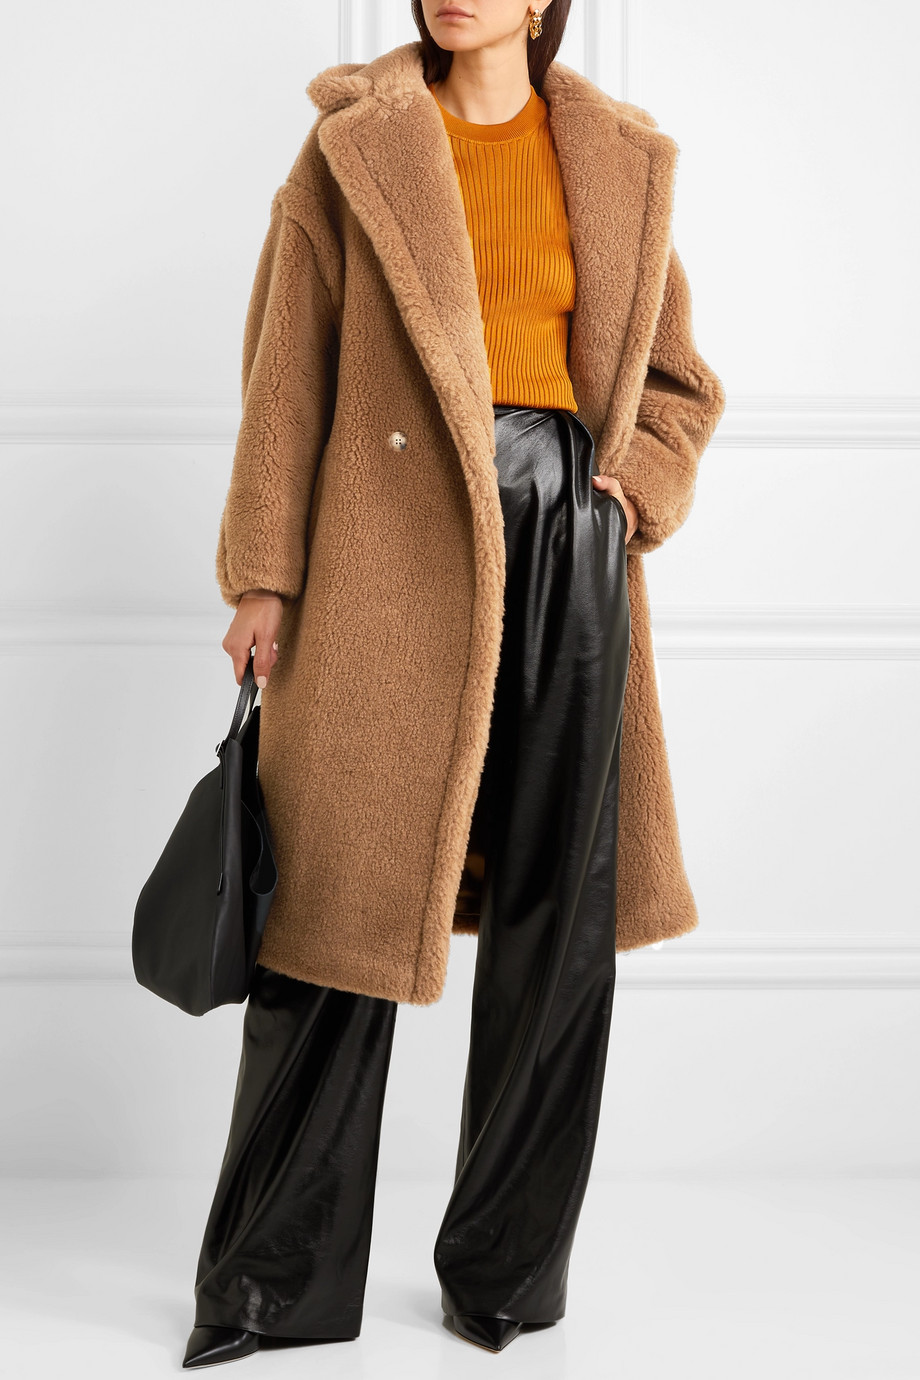 Pin on styling . winter